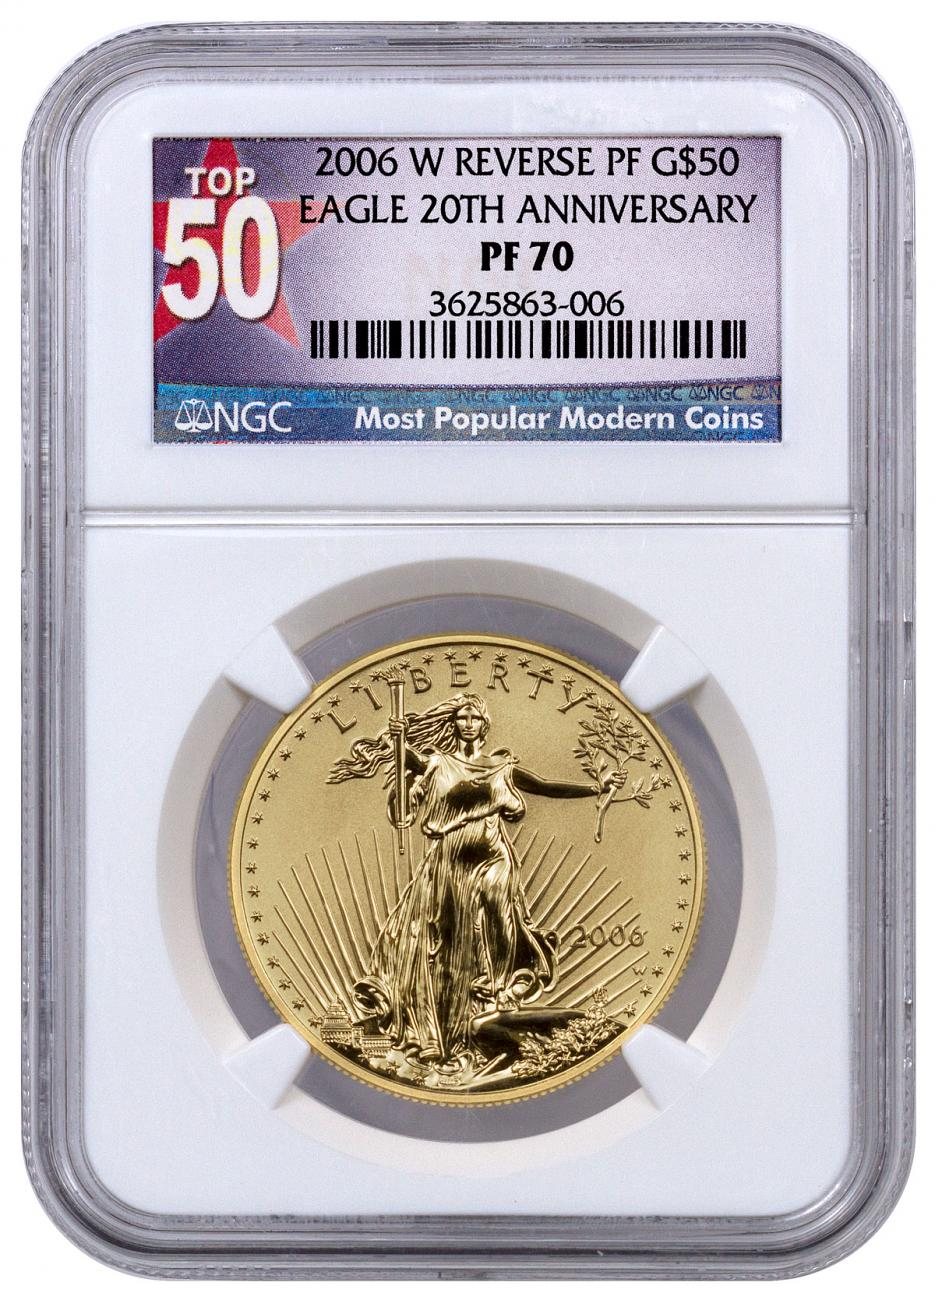 2006-W 1 oz Reverse Proof Gold Eagle $50 (20th Anniversary) NGC PF70 Top 50 Label